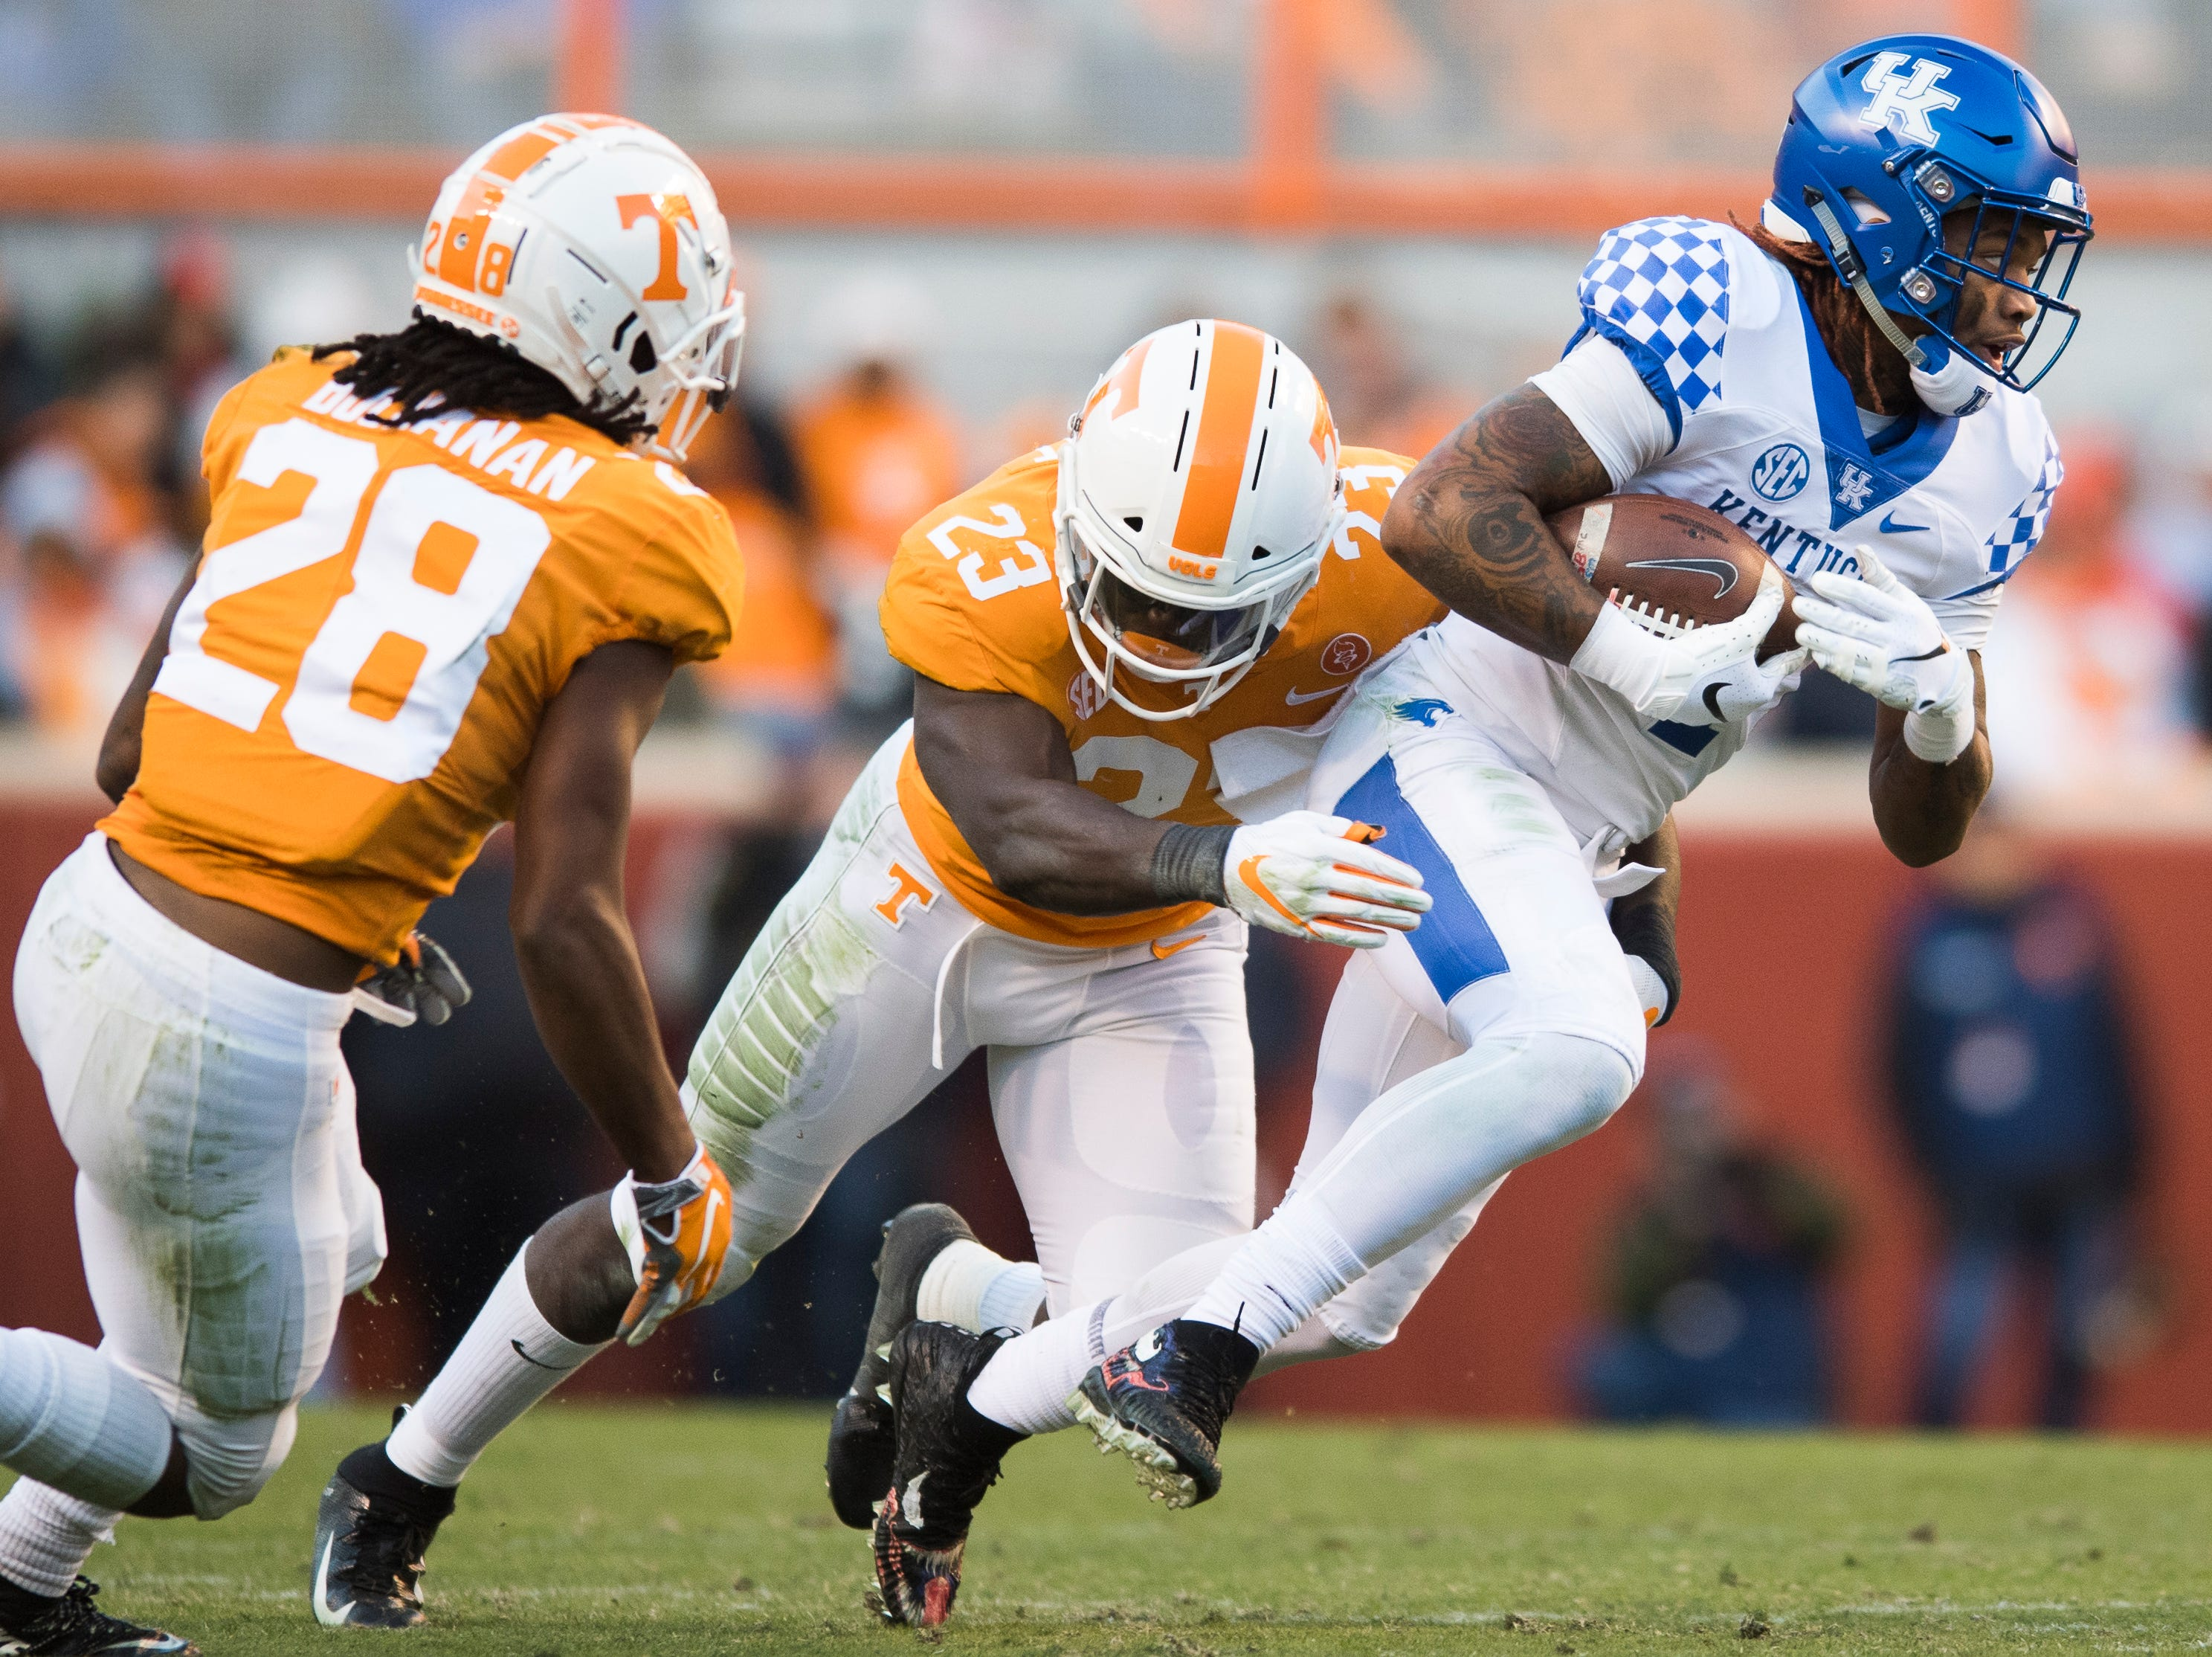 Kentucky wide receiver Lynn Bowden Jr. (1) tries to outrun Tennessee linebacker Will Ignont (23) as he tackles him during a game between Tennessee and Kentucky at Neyland Stadium in Knoxville, Tennessee on Saturday, November 10, 2018.